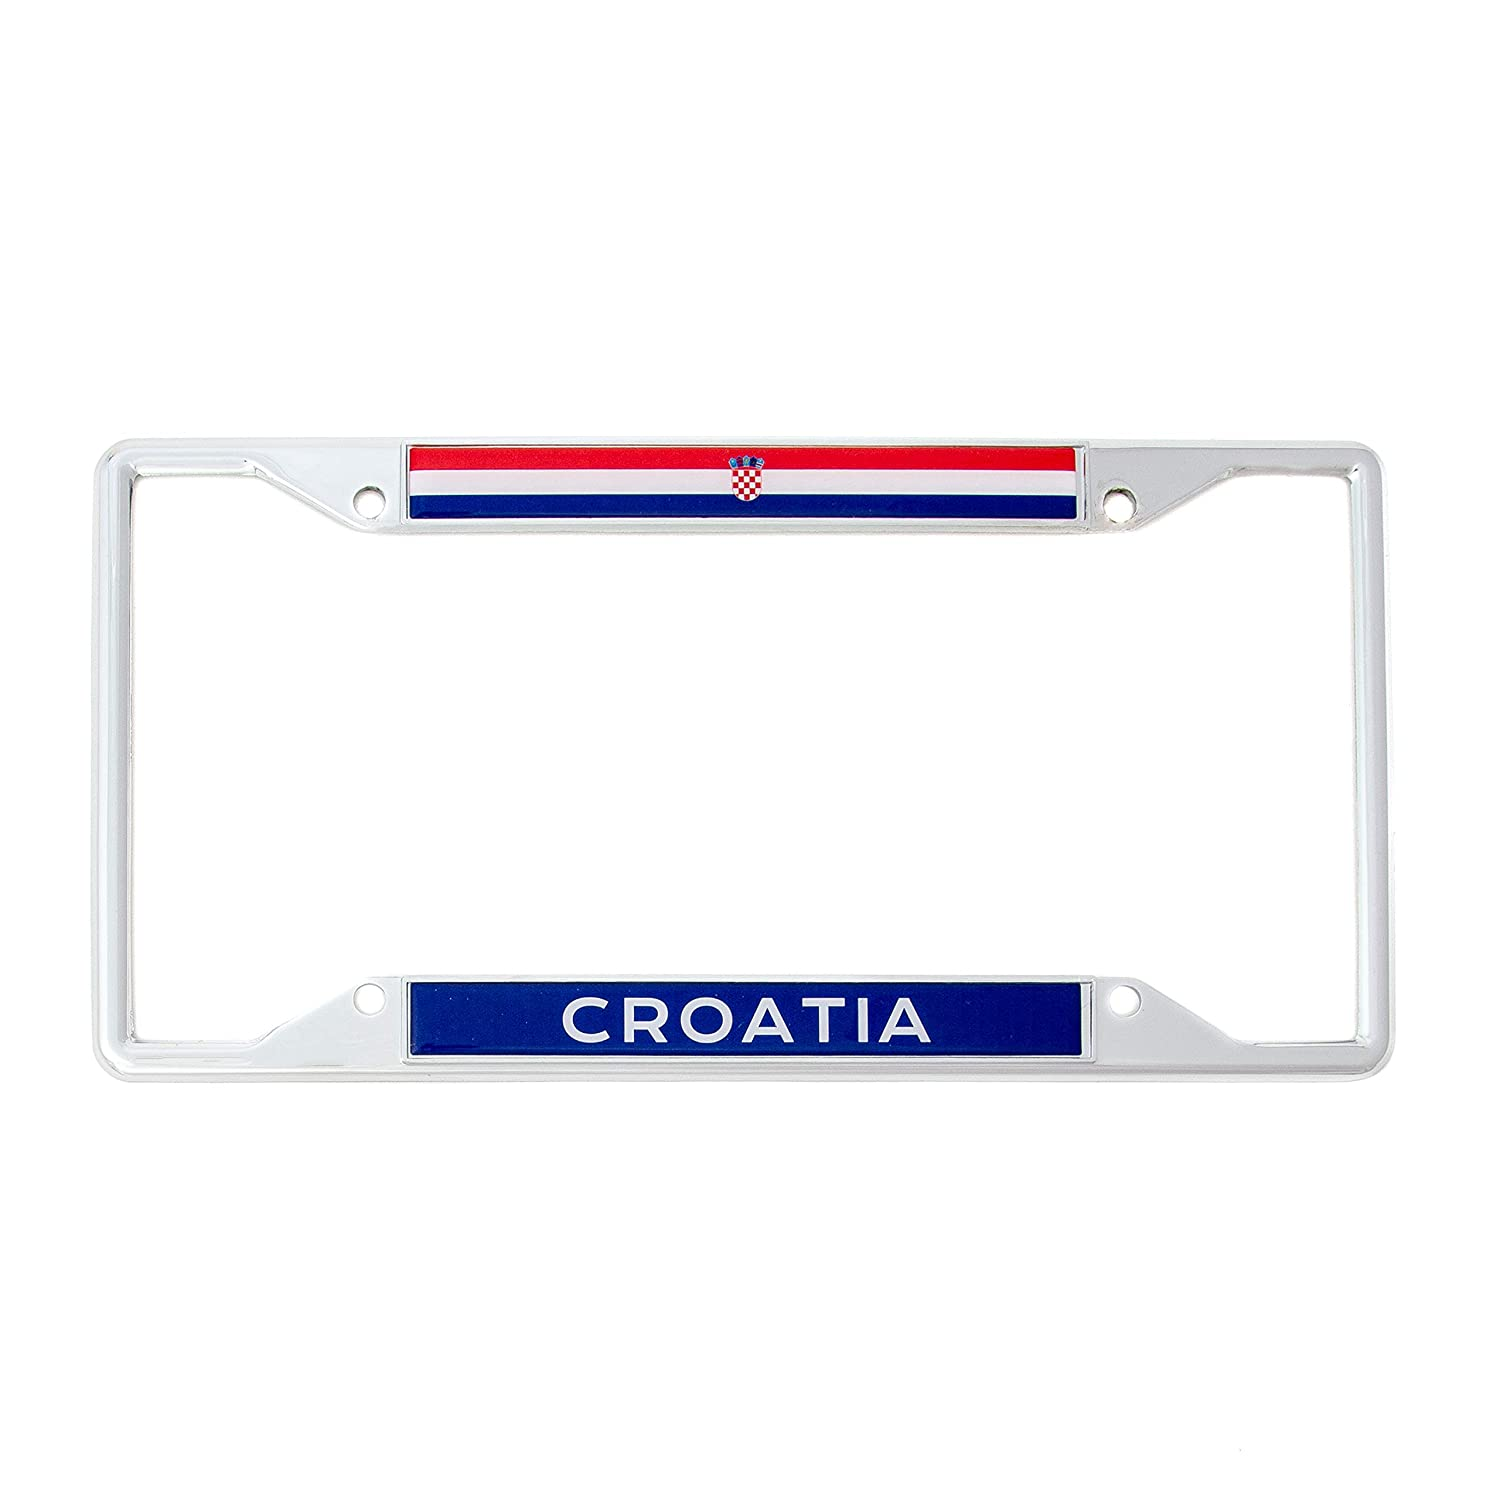 Desert Cactus Country of Croatia Flag License Plate Frame for Front Back of Car Vehicle Truck Croatian